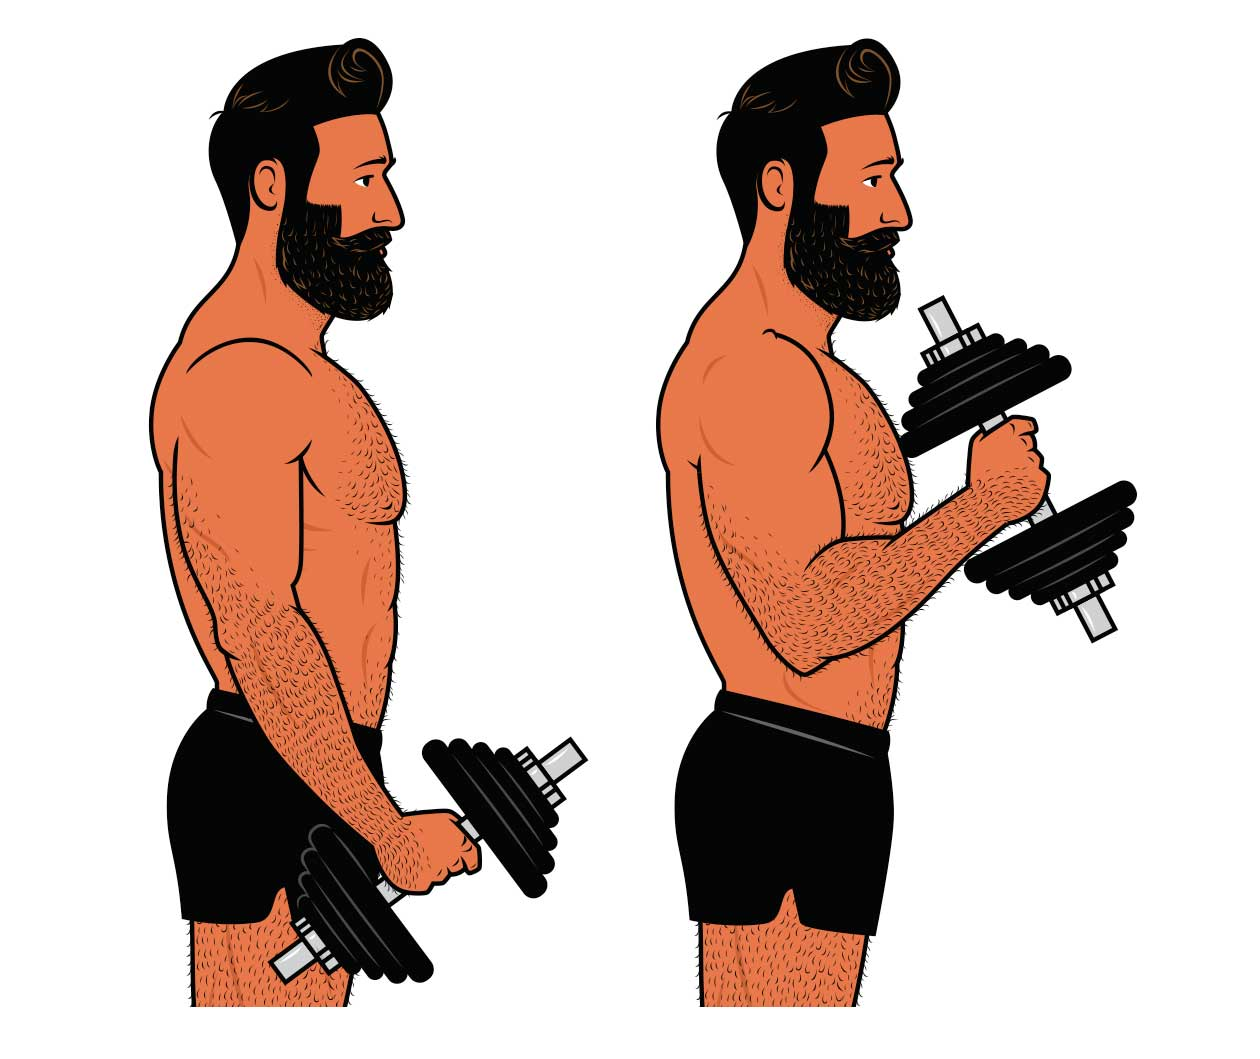 Illustration of a bodybuilder training his arms with hammer curls.